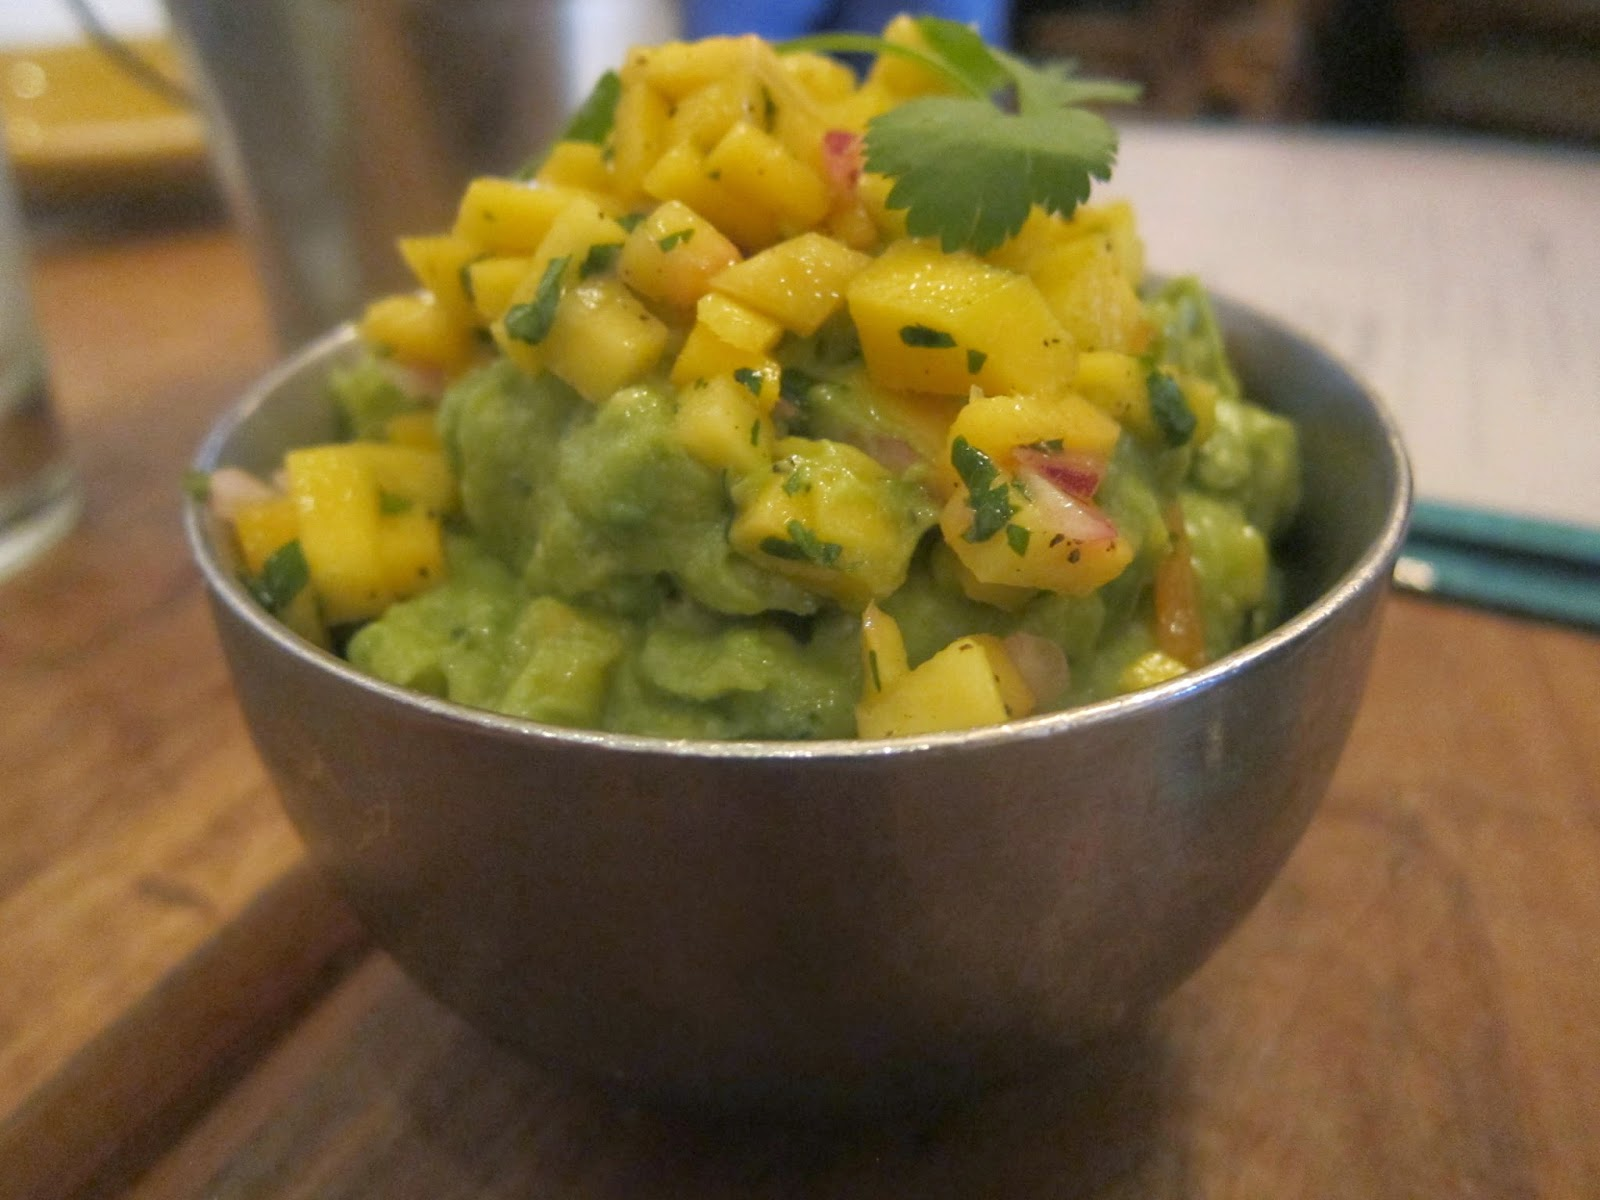 Mango Guacamole from The Painted Burro | The Economical Eater